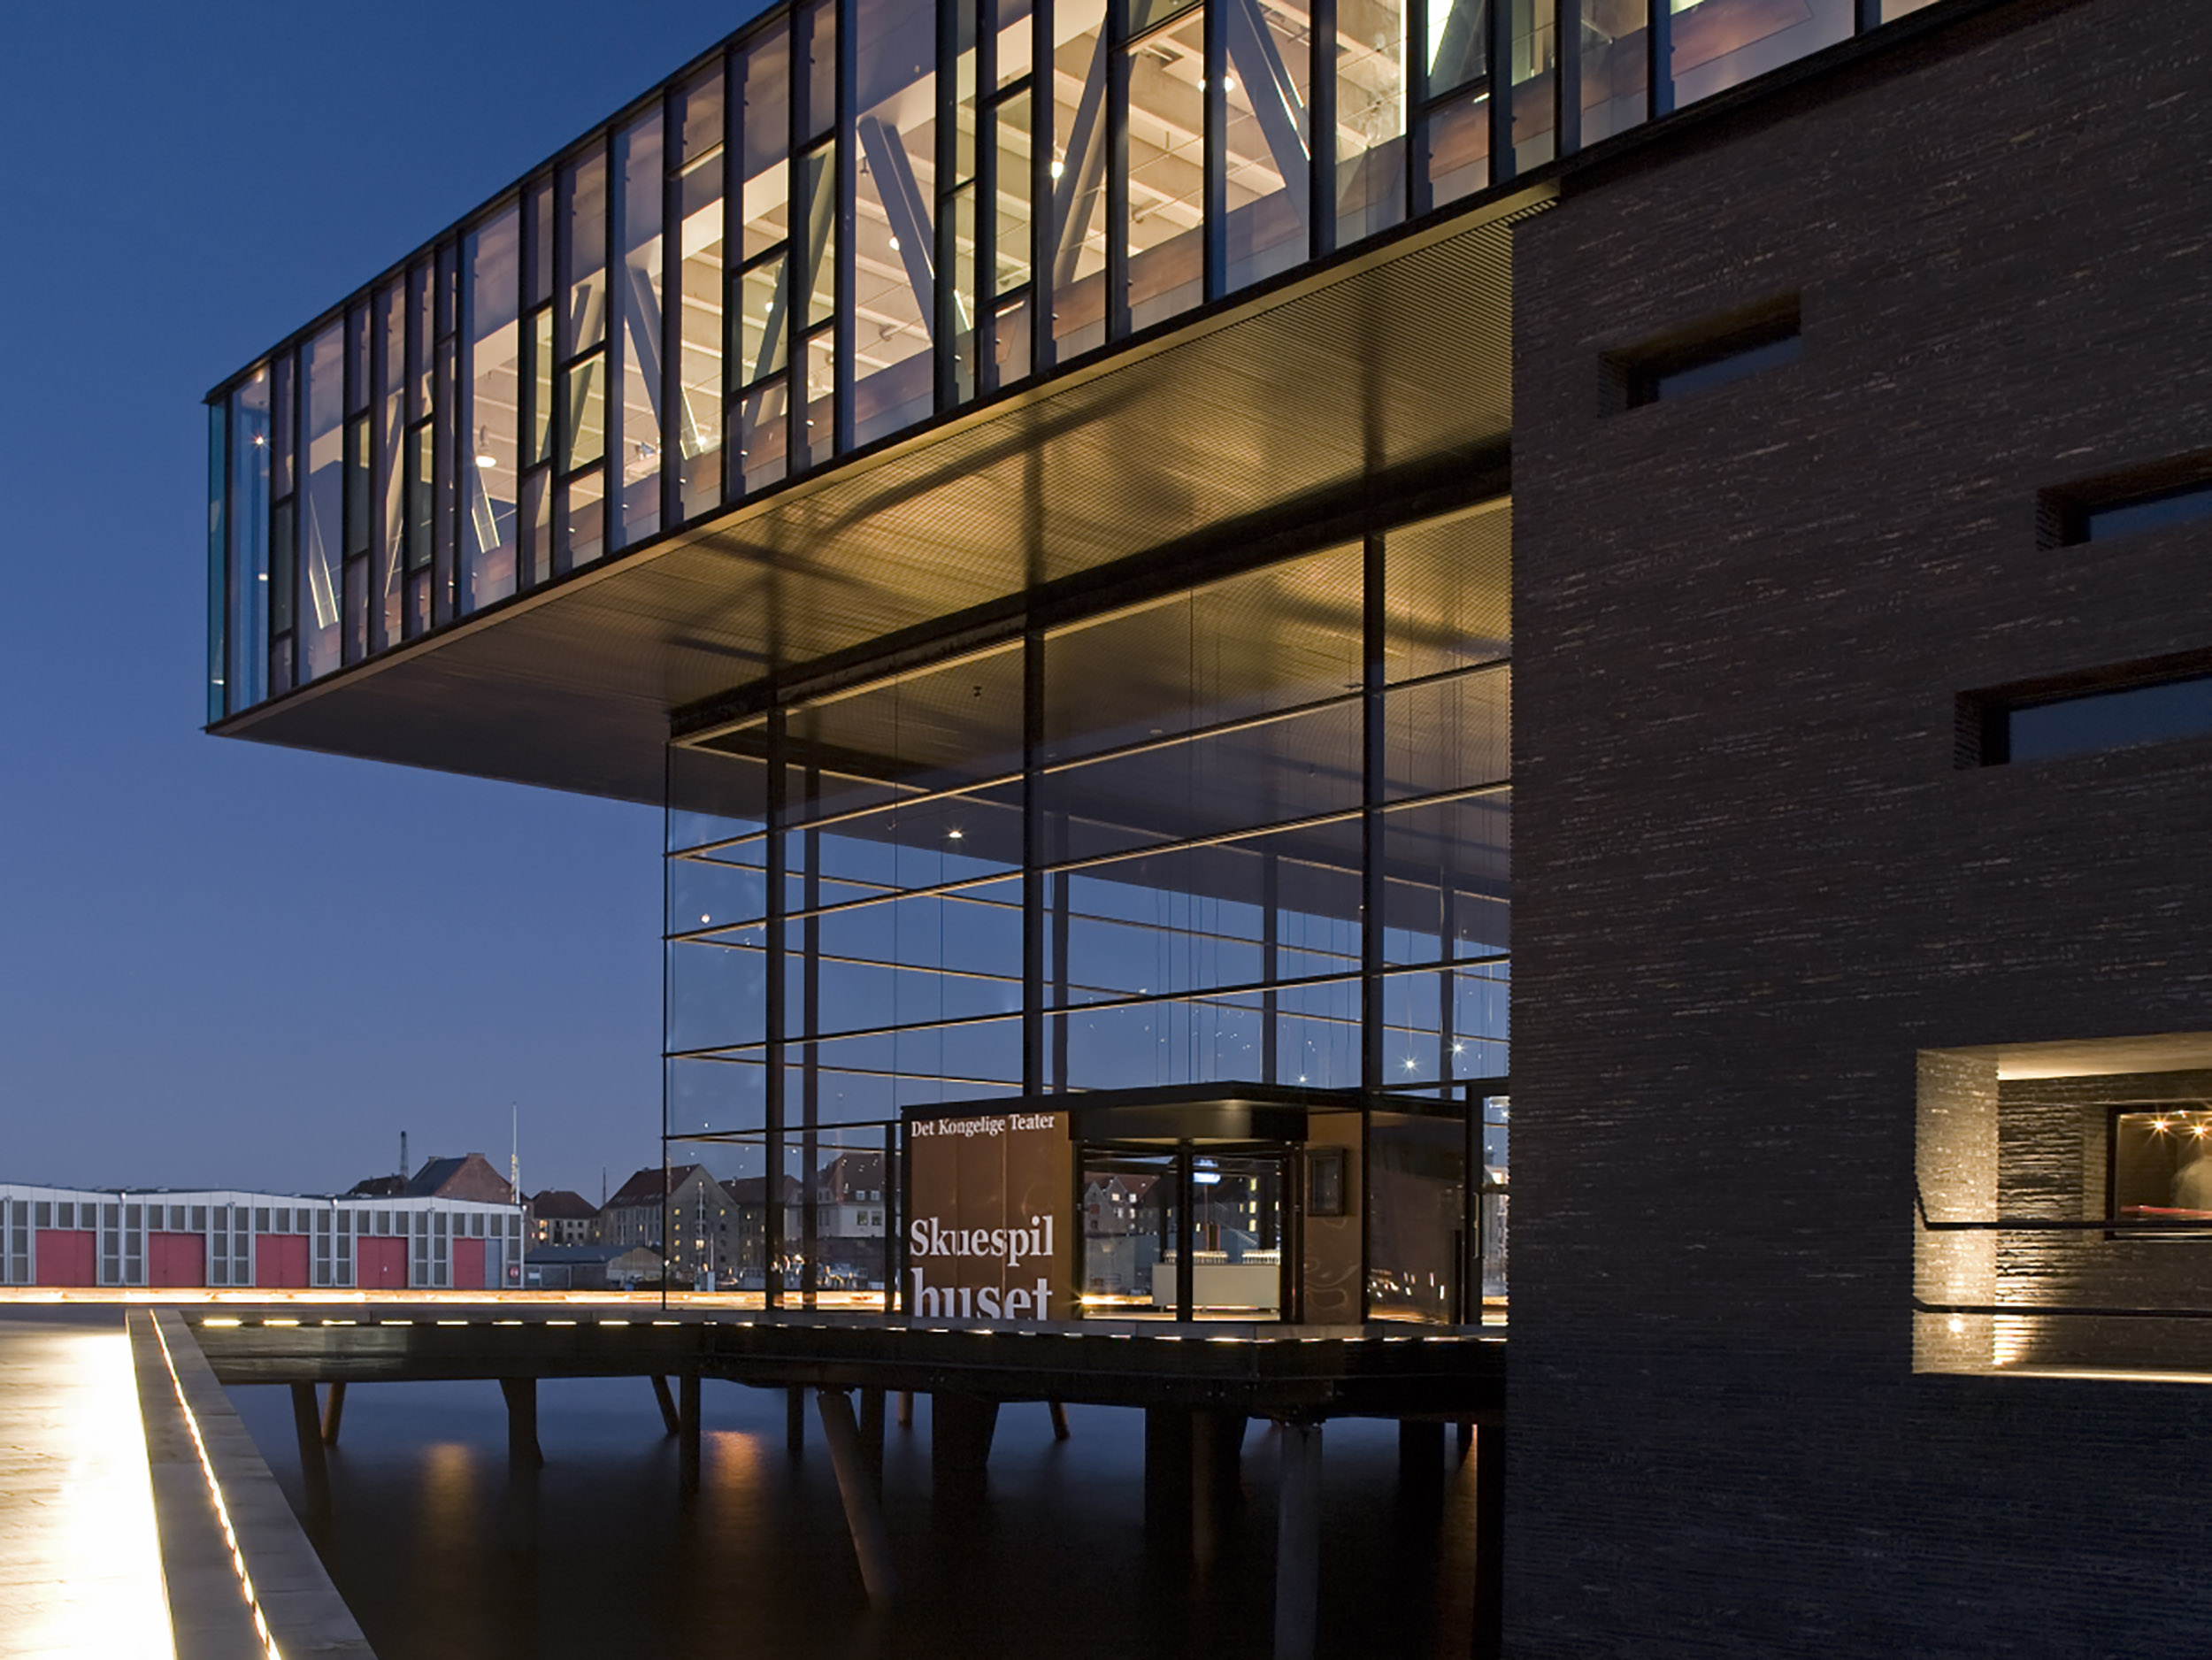 The Royal Danish Playhouse - Det Kongelige Teatres Skuespilhus